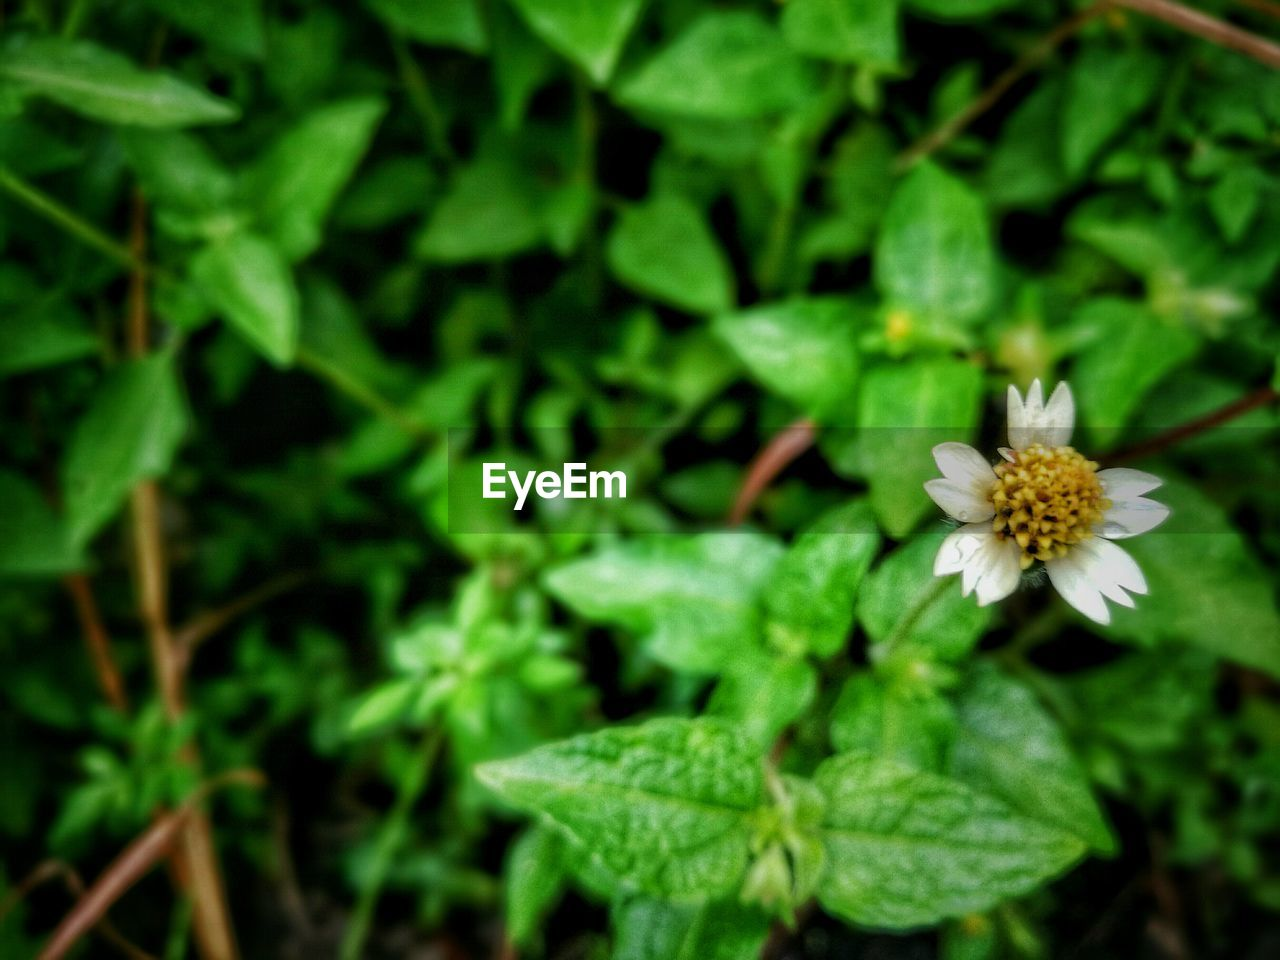 flower, growth, nature, plant, petal, fragility, green color, beauty in nature, leaf, flower head, freshness, no people, outdoors, day, blooming, close-up, animal themes